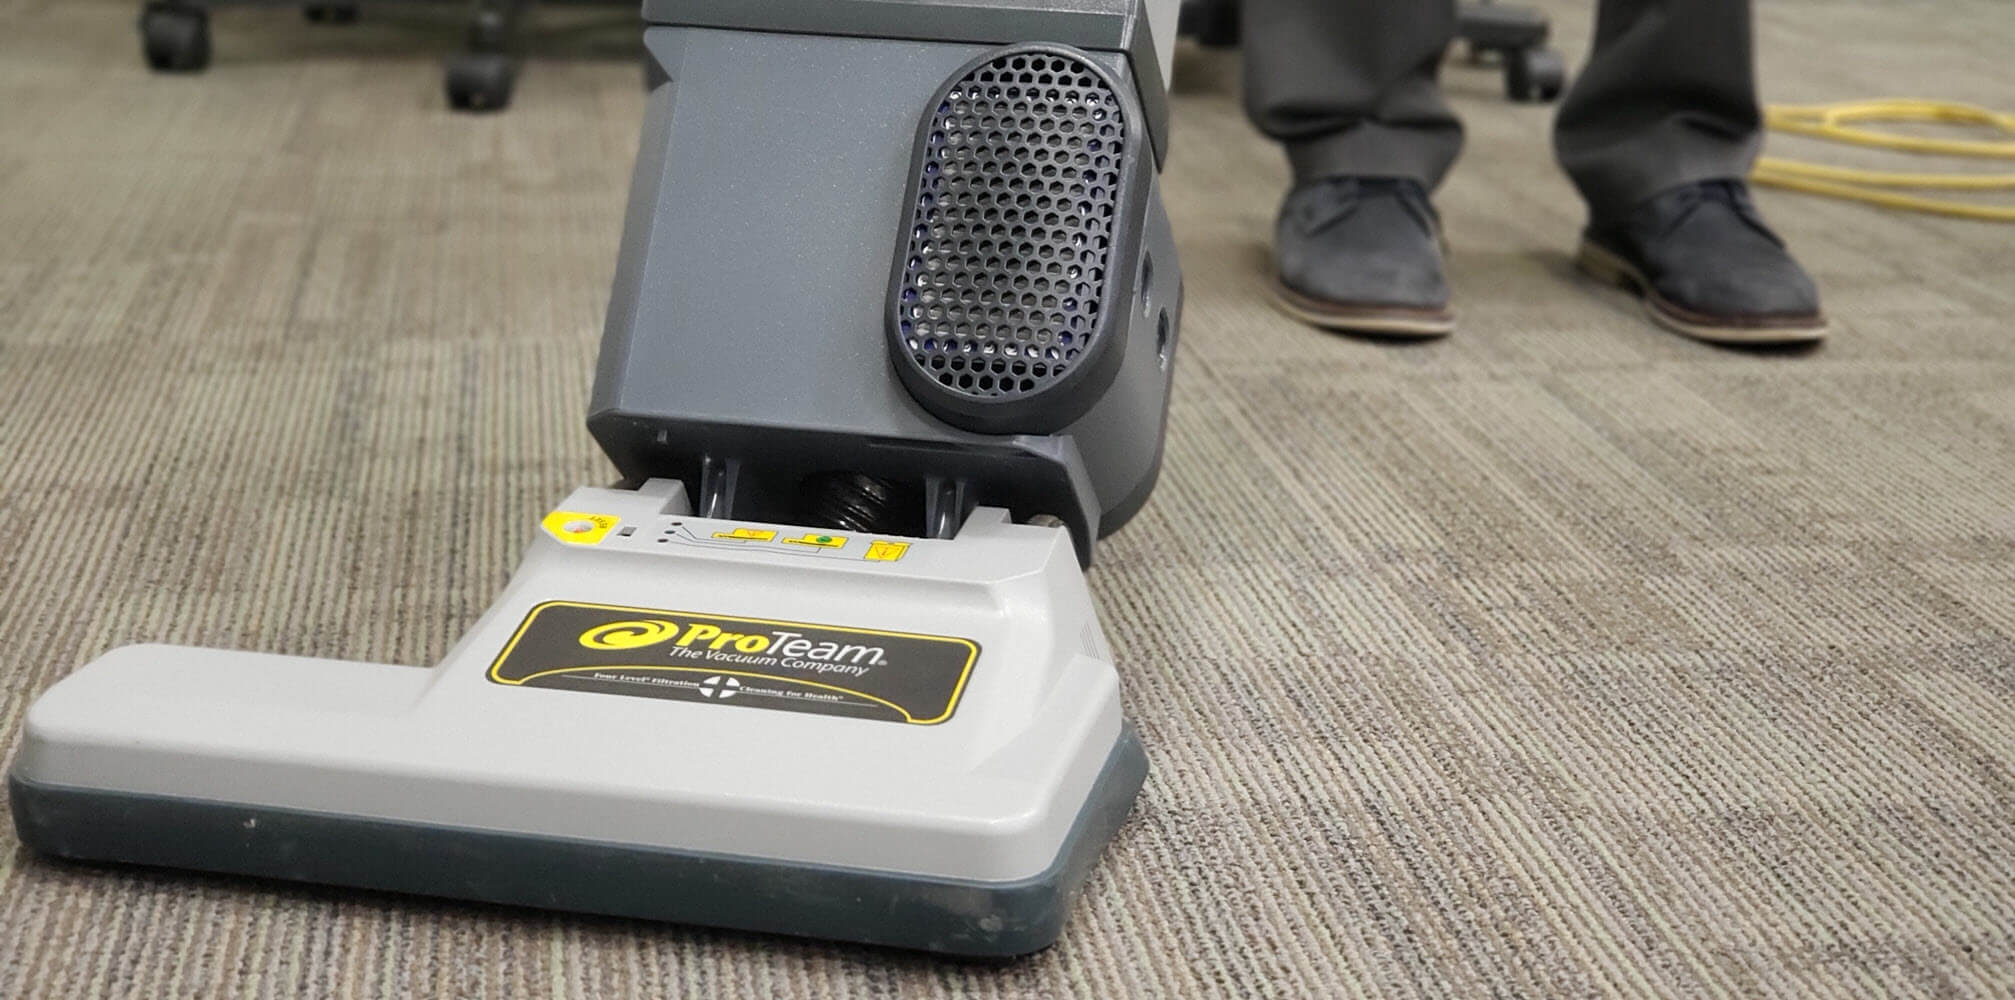 How Much Does A Commercial Vacuum Cost: 9 Factors That Affect Price